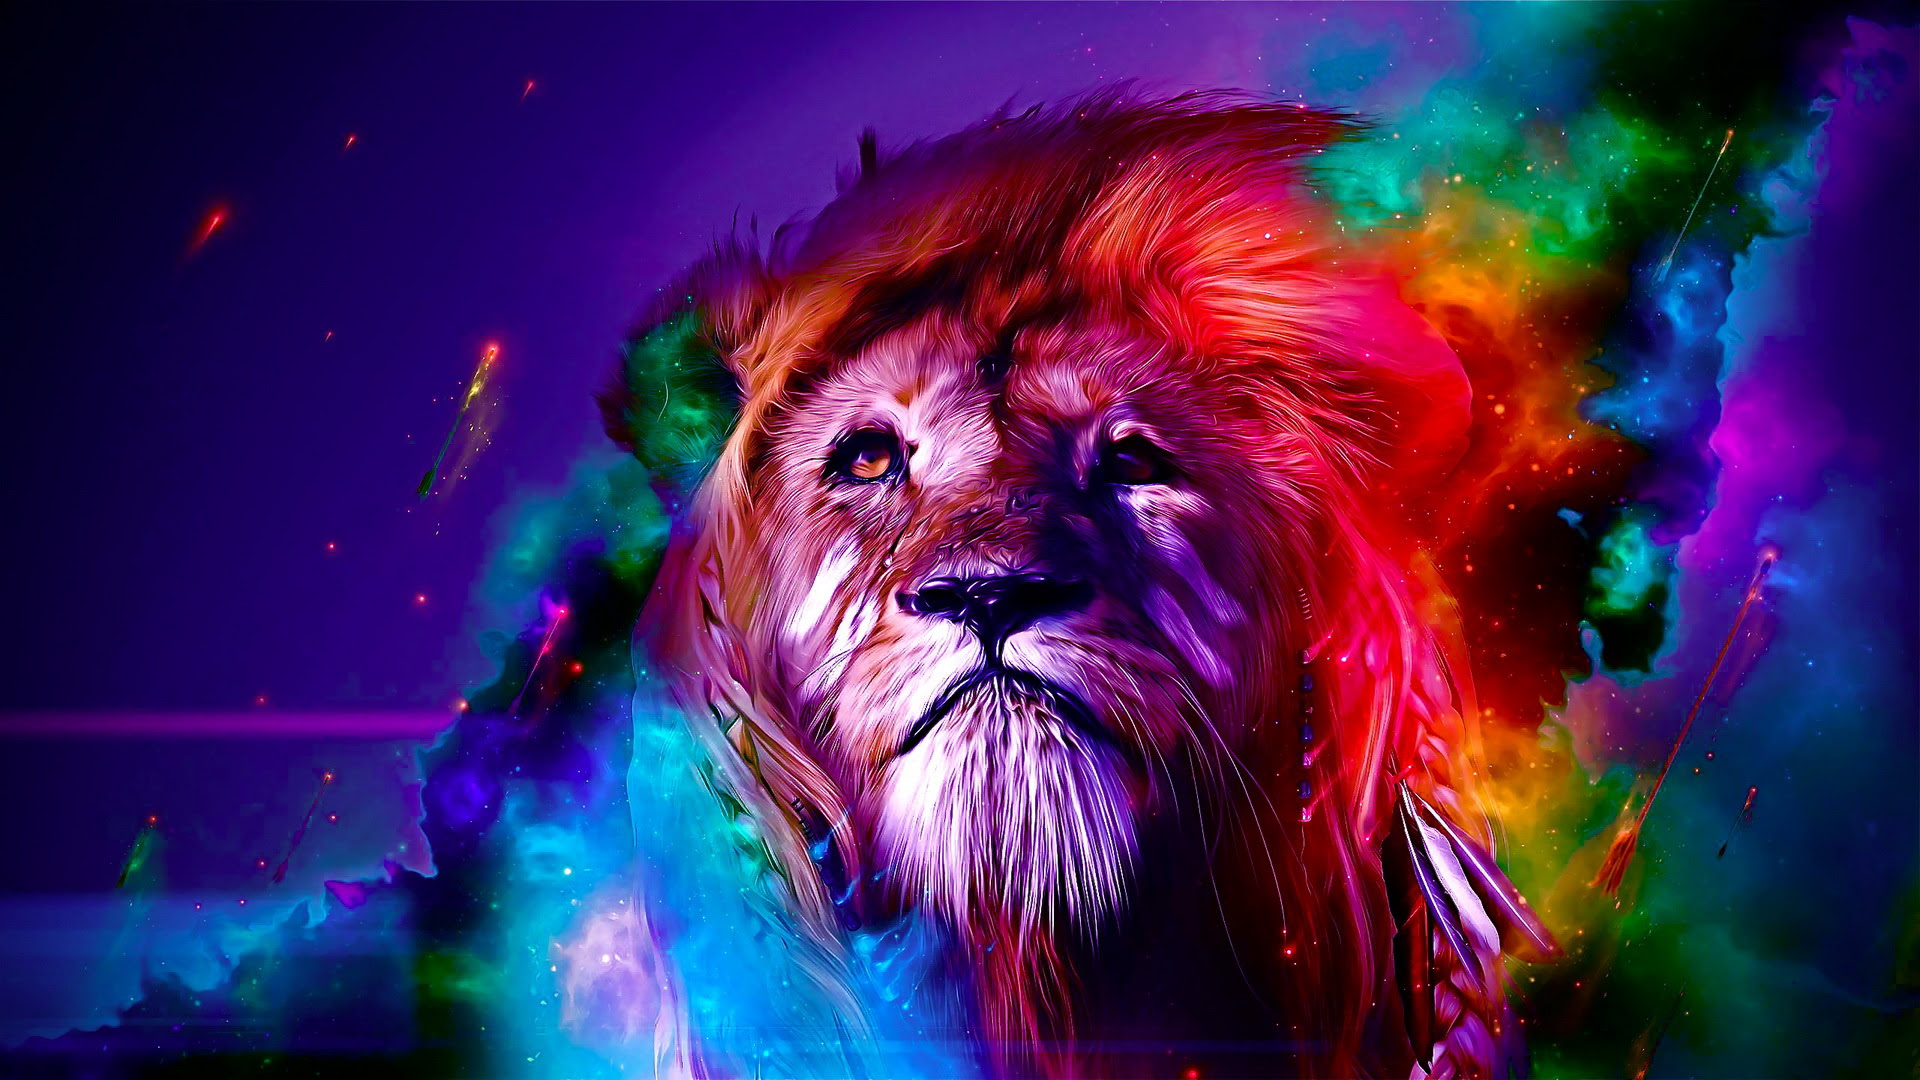 Hd Lion Wallpapers For Laptop